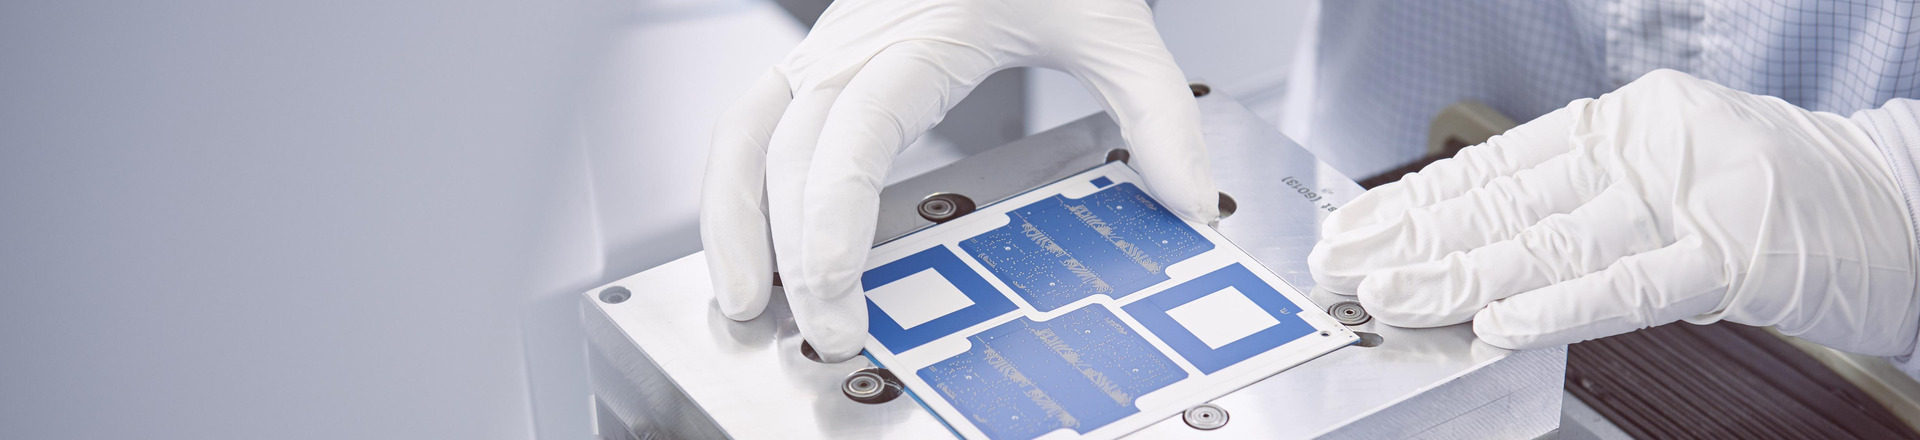 Thin- and thick-film substrates